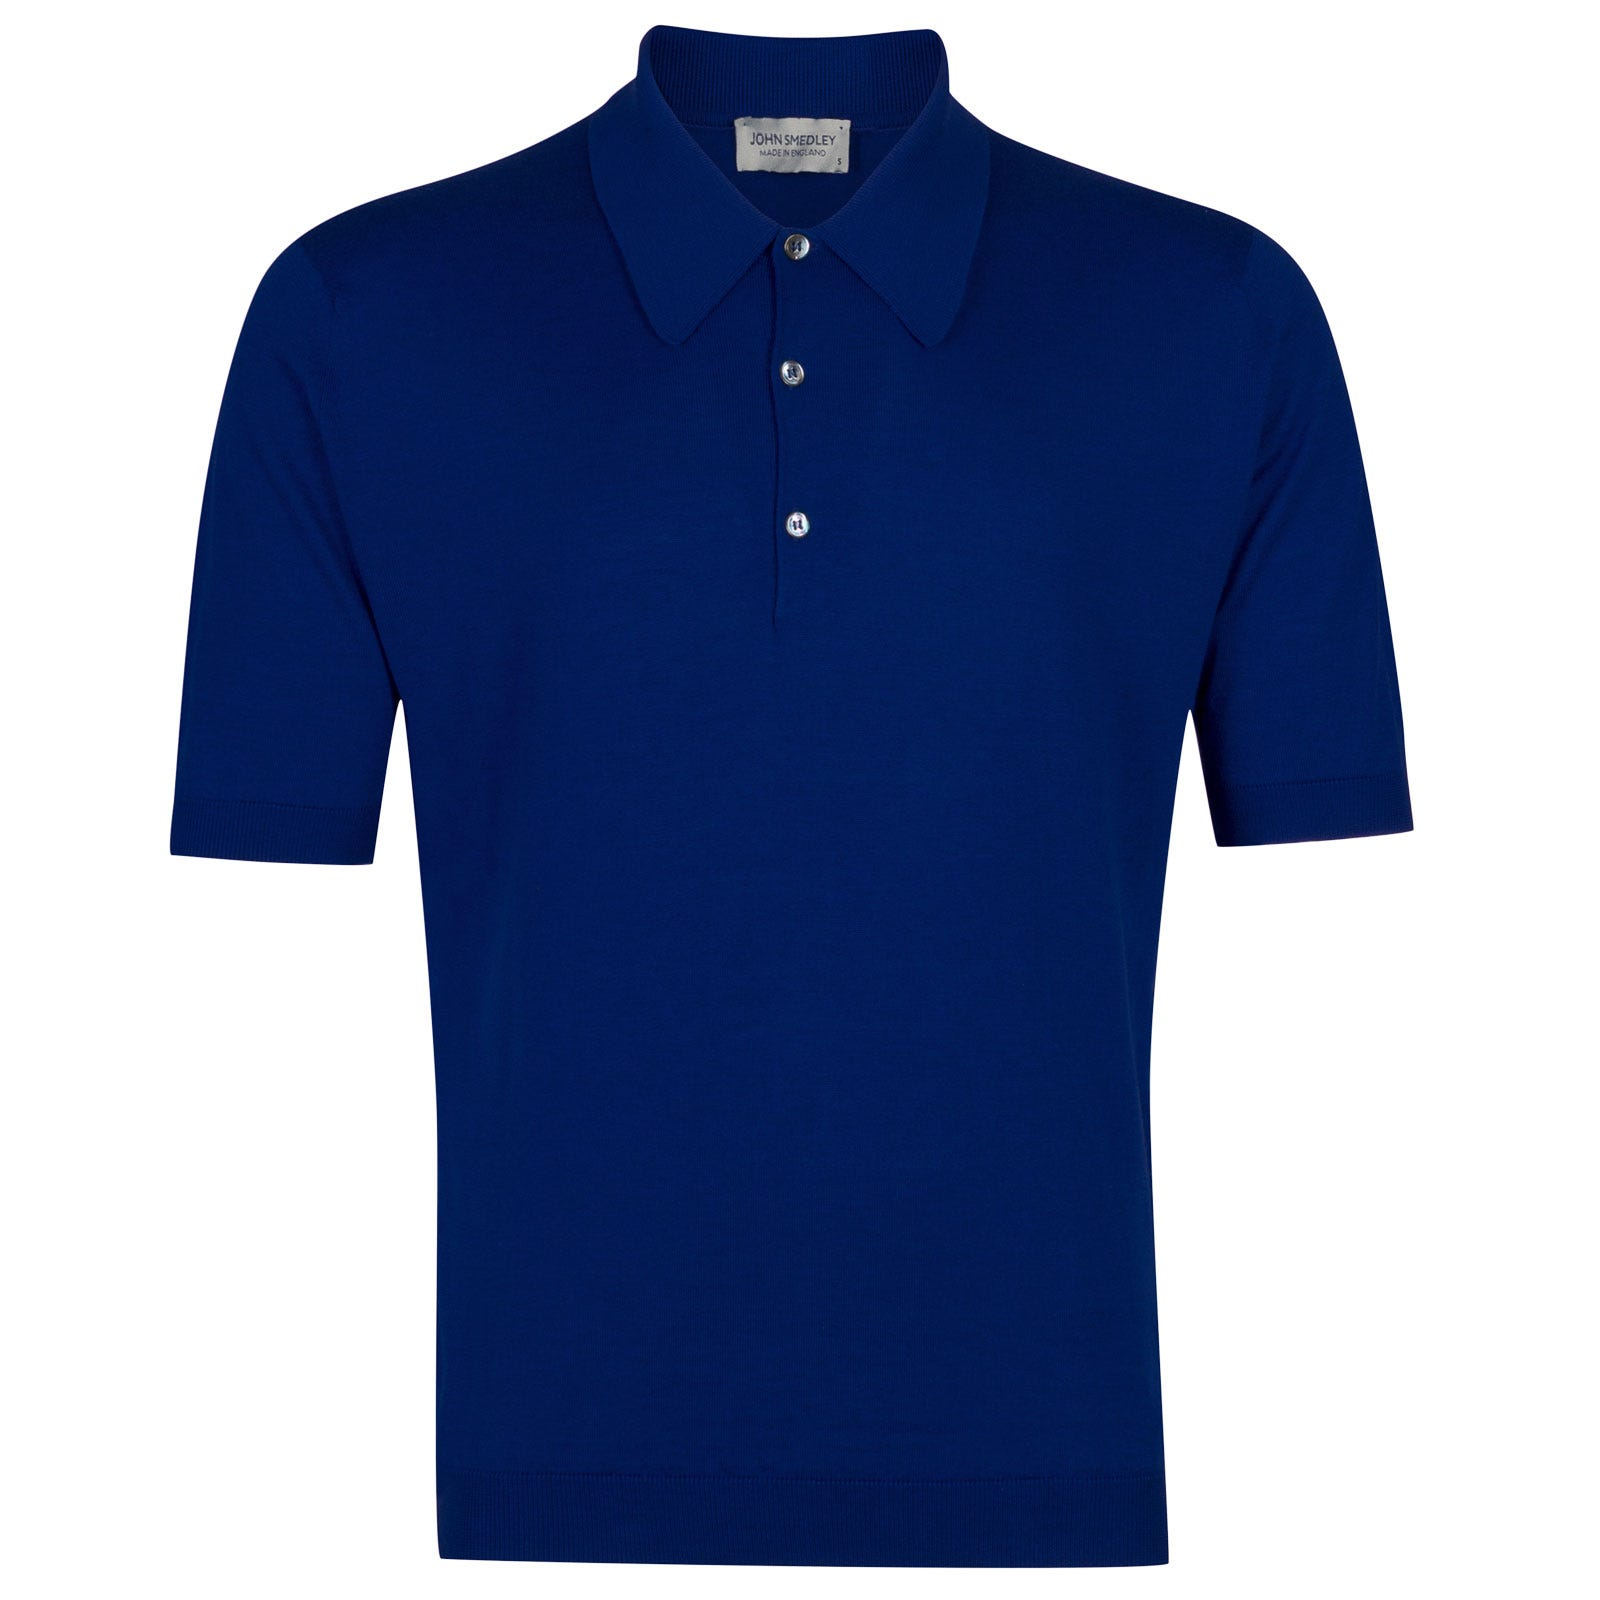 John Smedley Isis Sea Island Cotton Shirt in Coniston Blue-XL